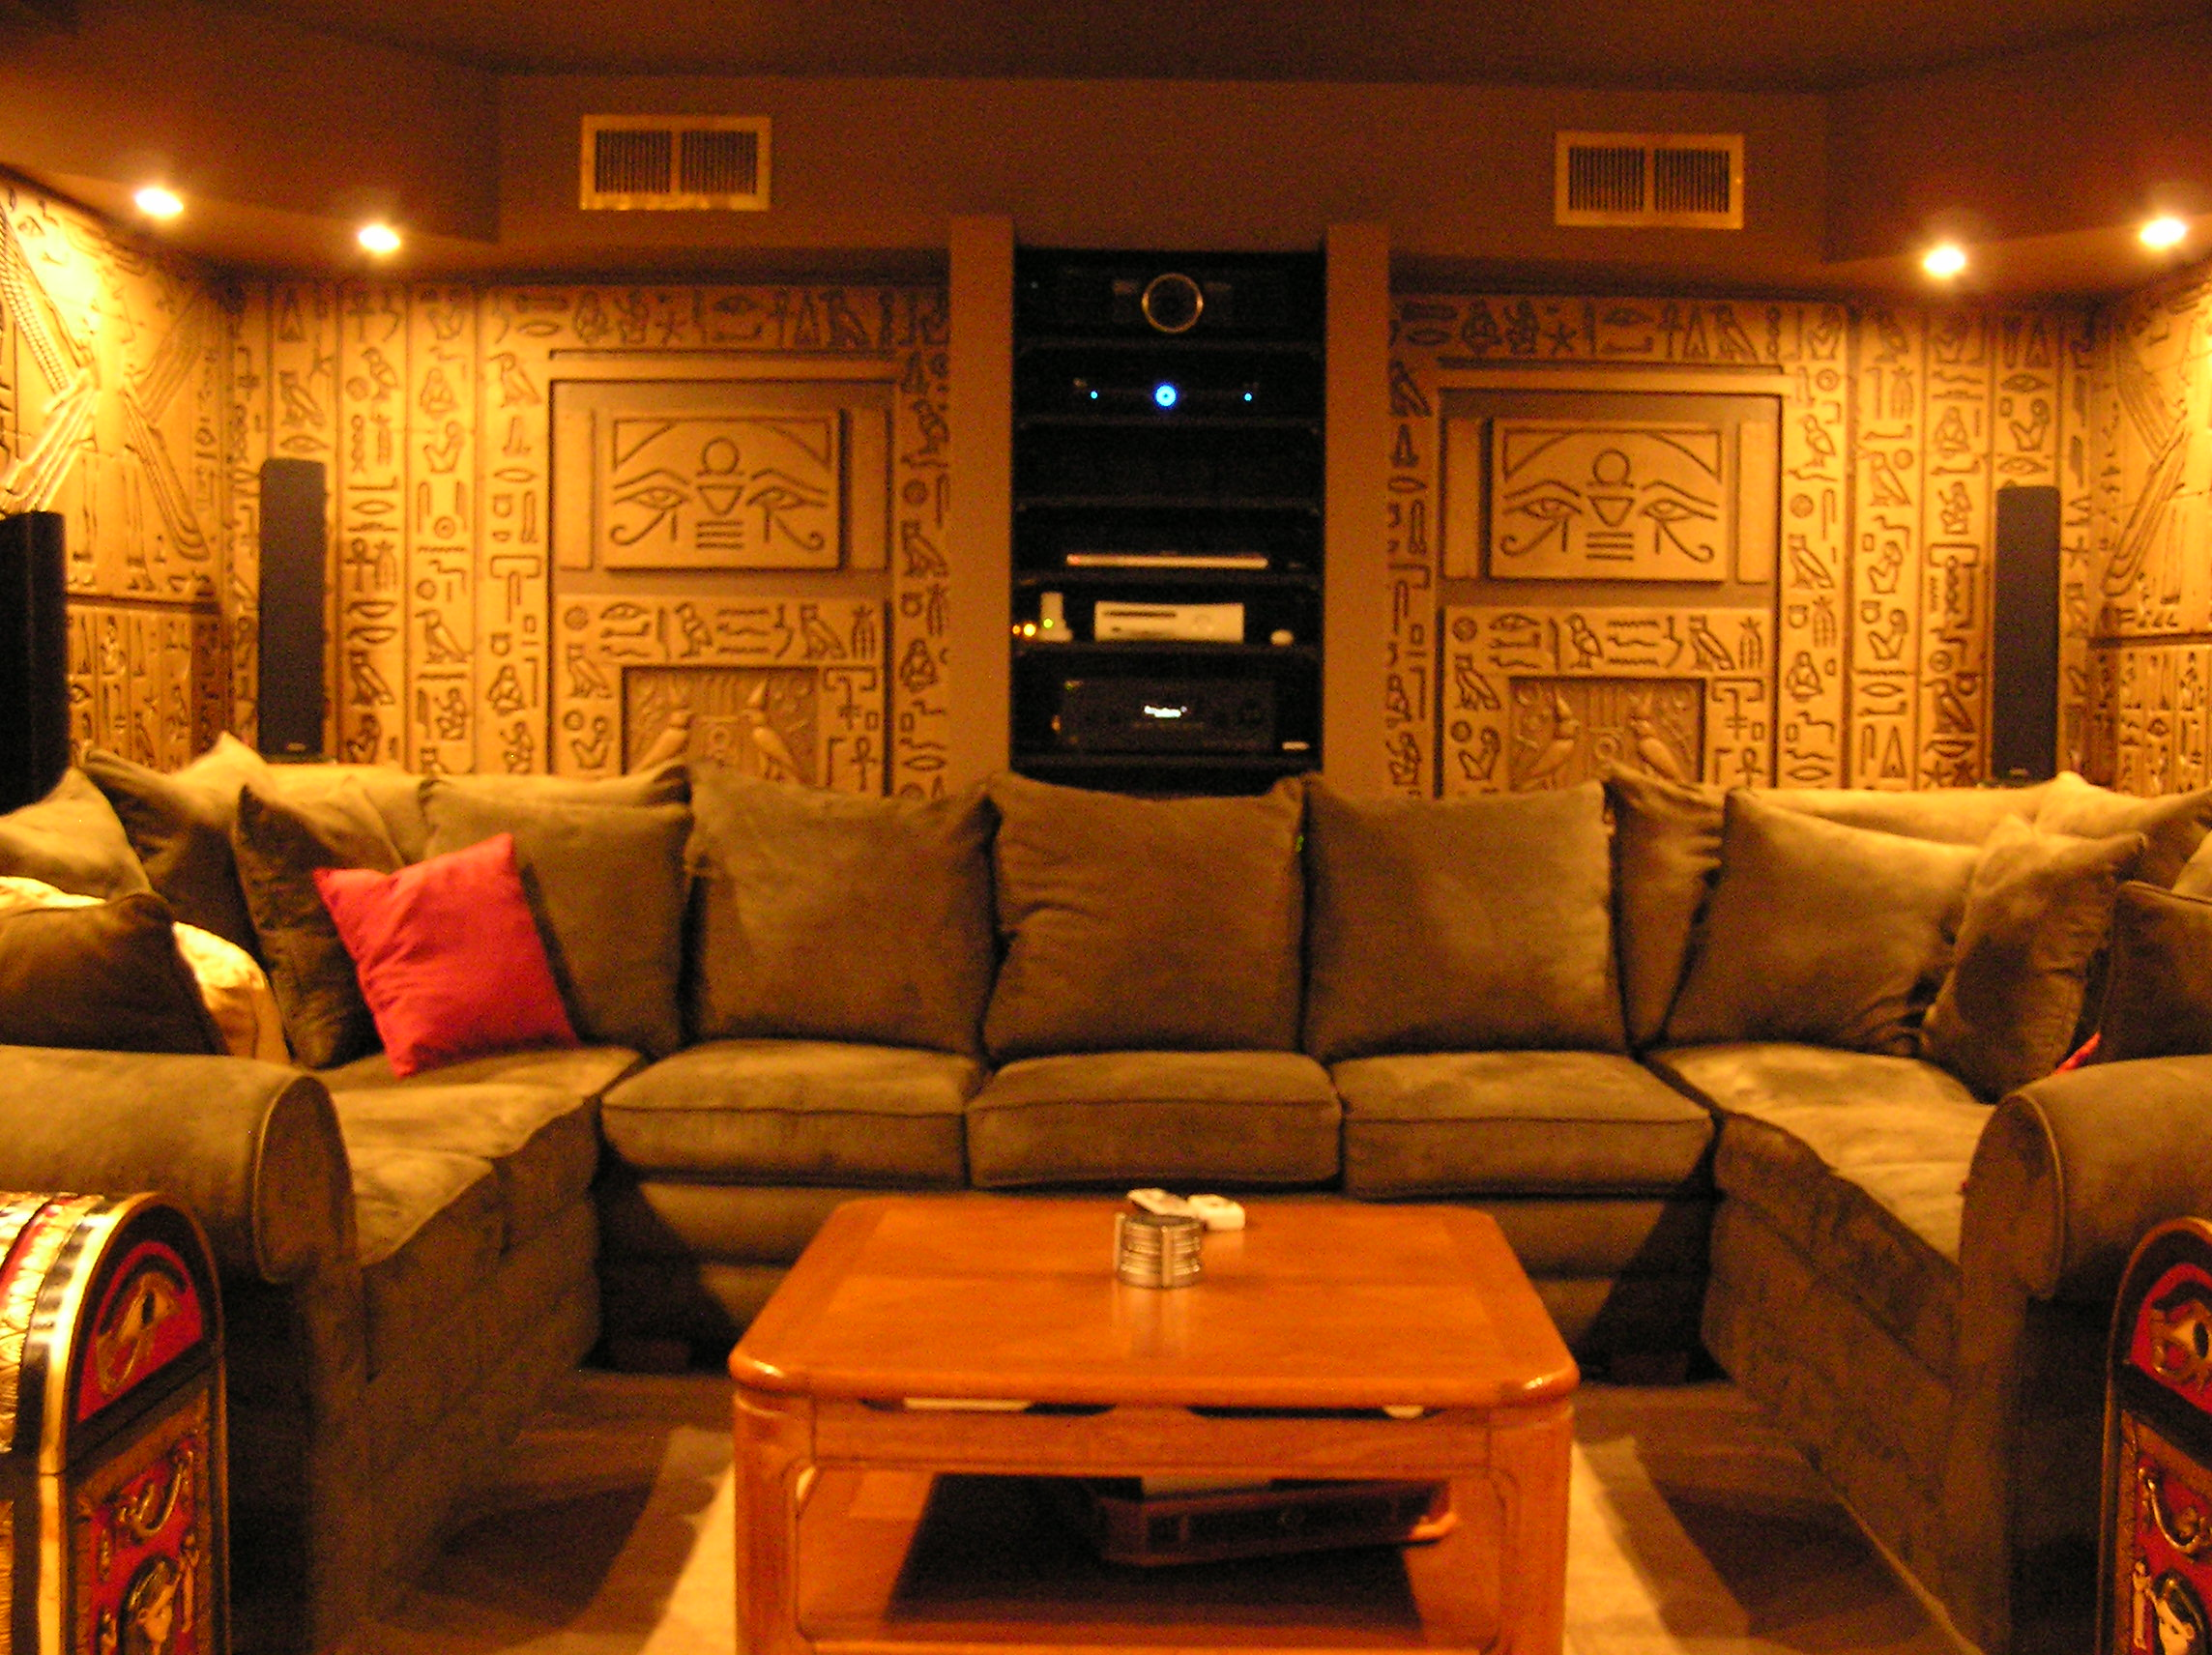 egyptian tomb home theater photos avs forum home theater discussions and reviews. Black Bedroom Furniture Sets. Home Design Ideas